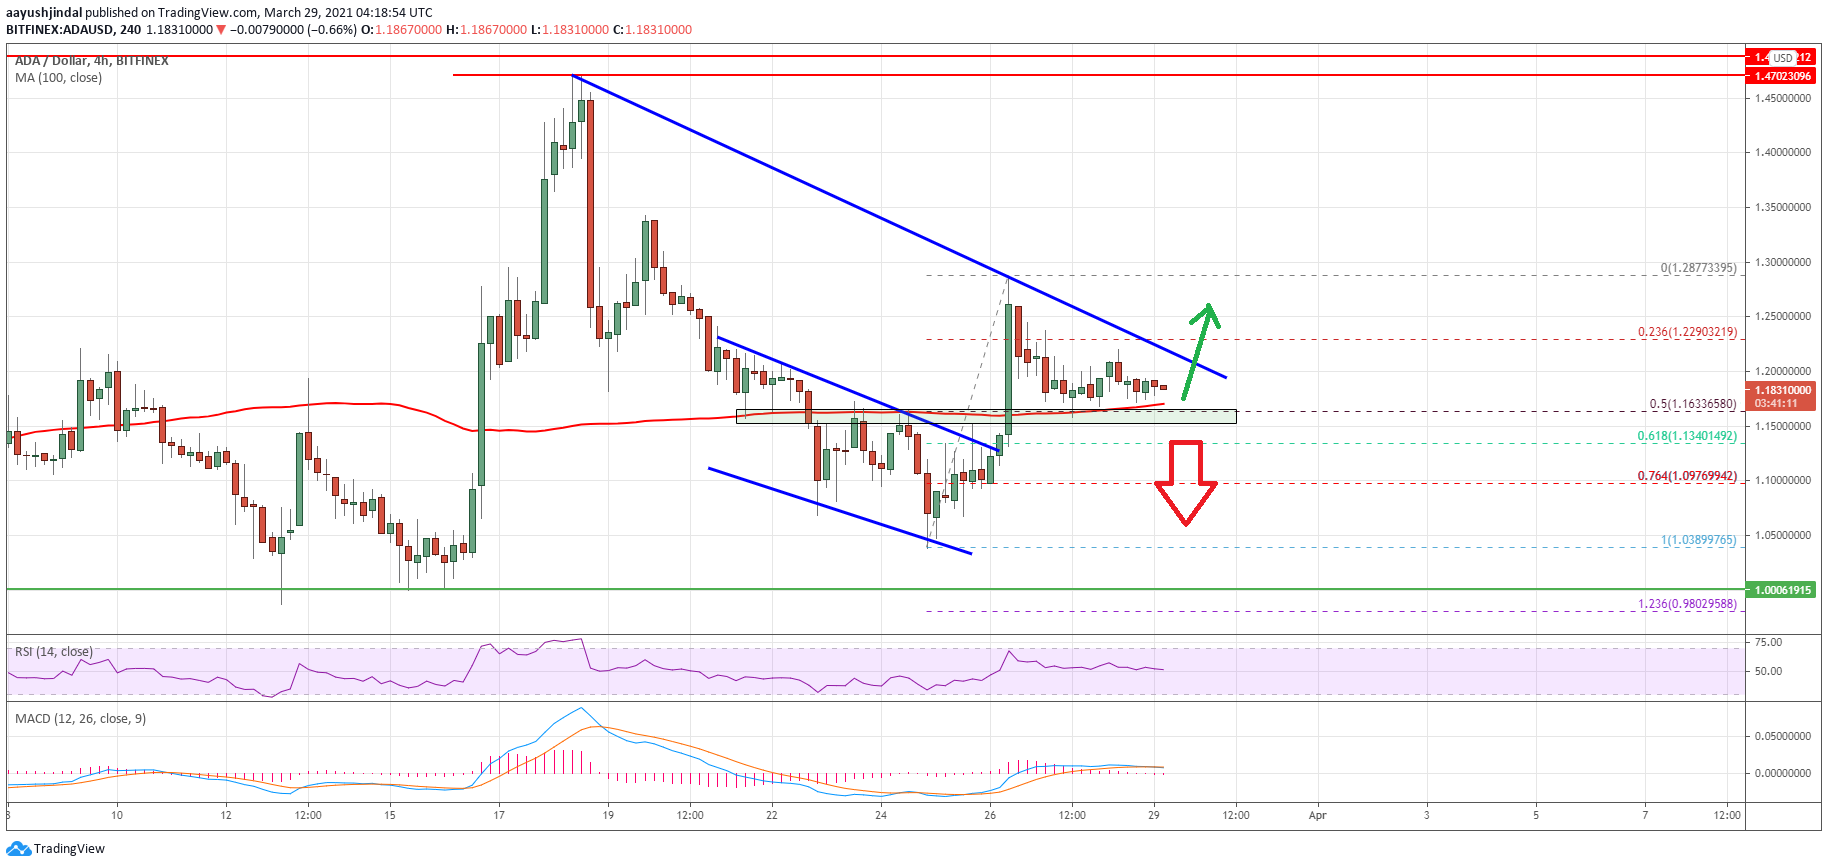 Charted: Cardano (ADA) Holds Key Support, Why It Could Rally Above $1.22